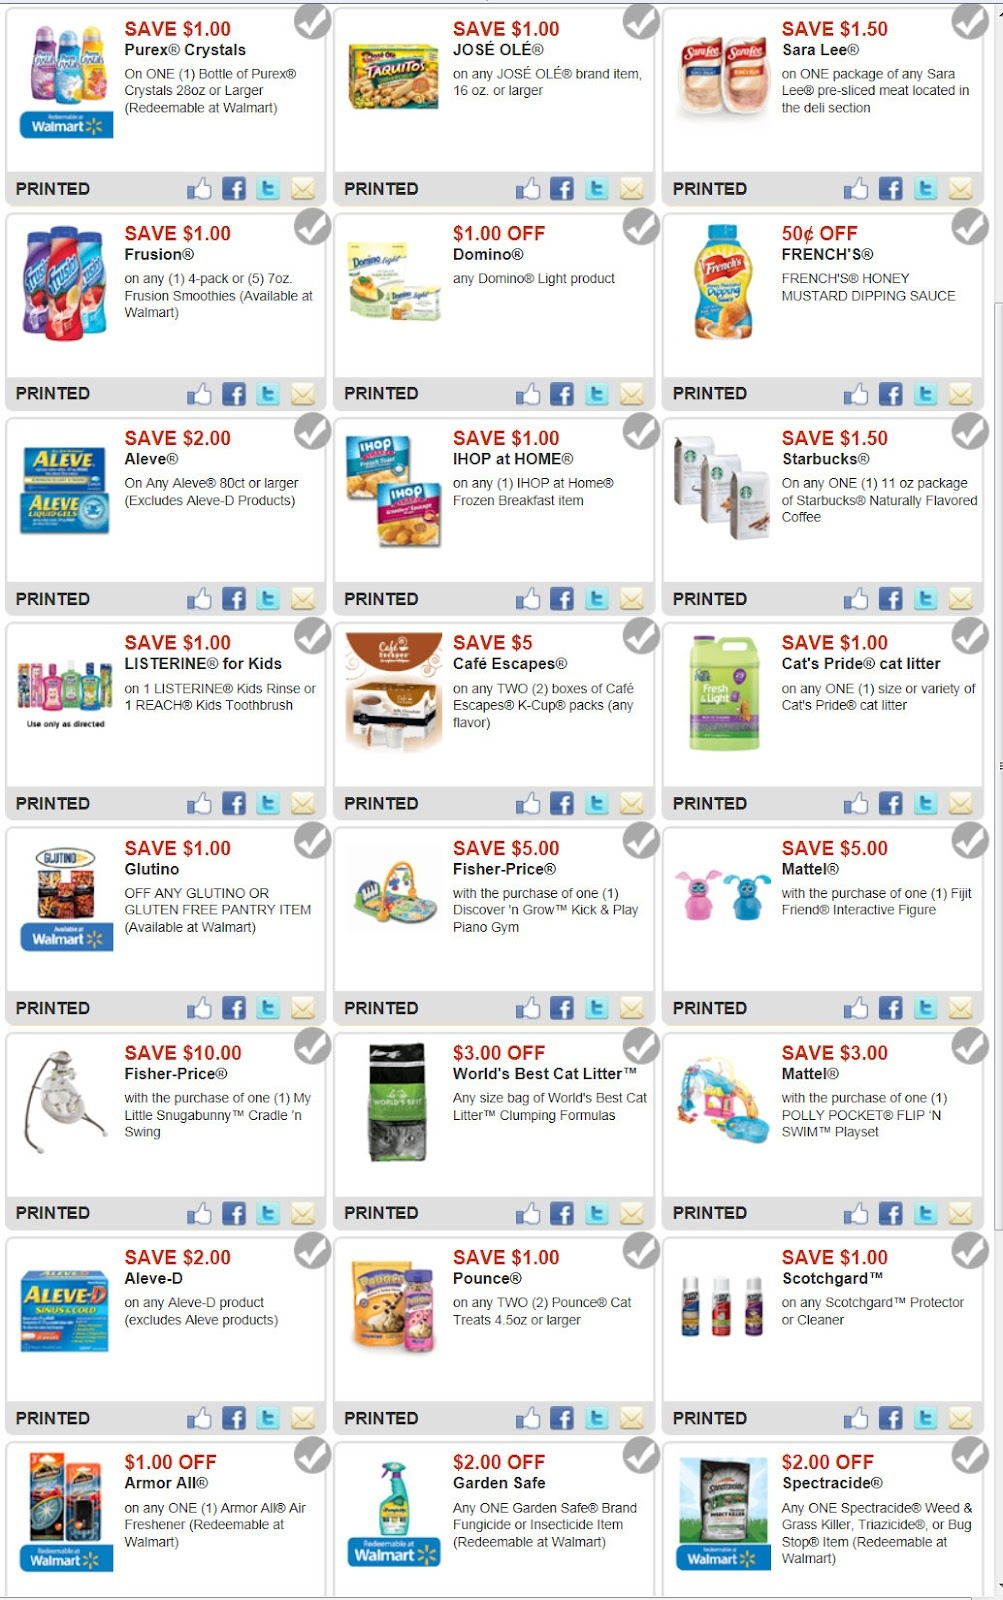 Collection Of Printable Coupons For Walmart (32+ Images In Collection) - Free Printable Coupons For Walmart